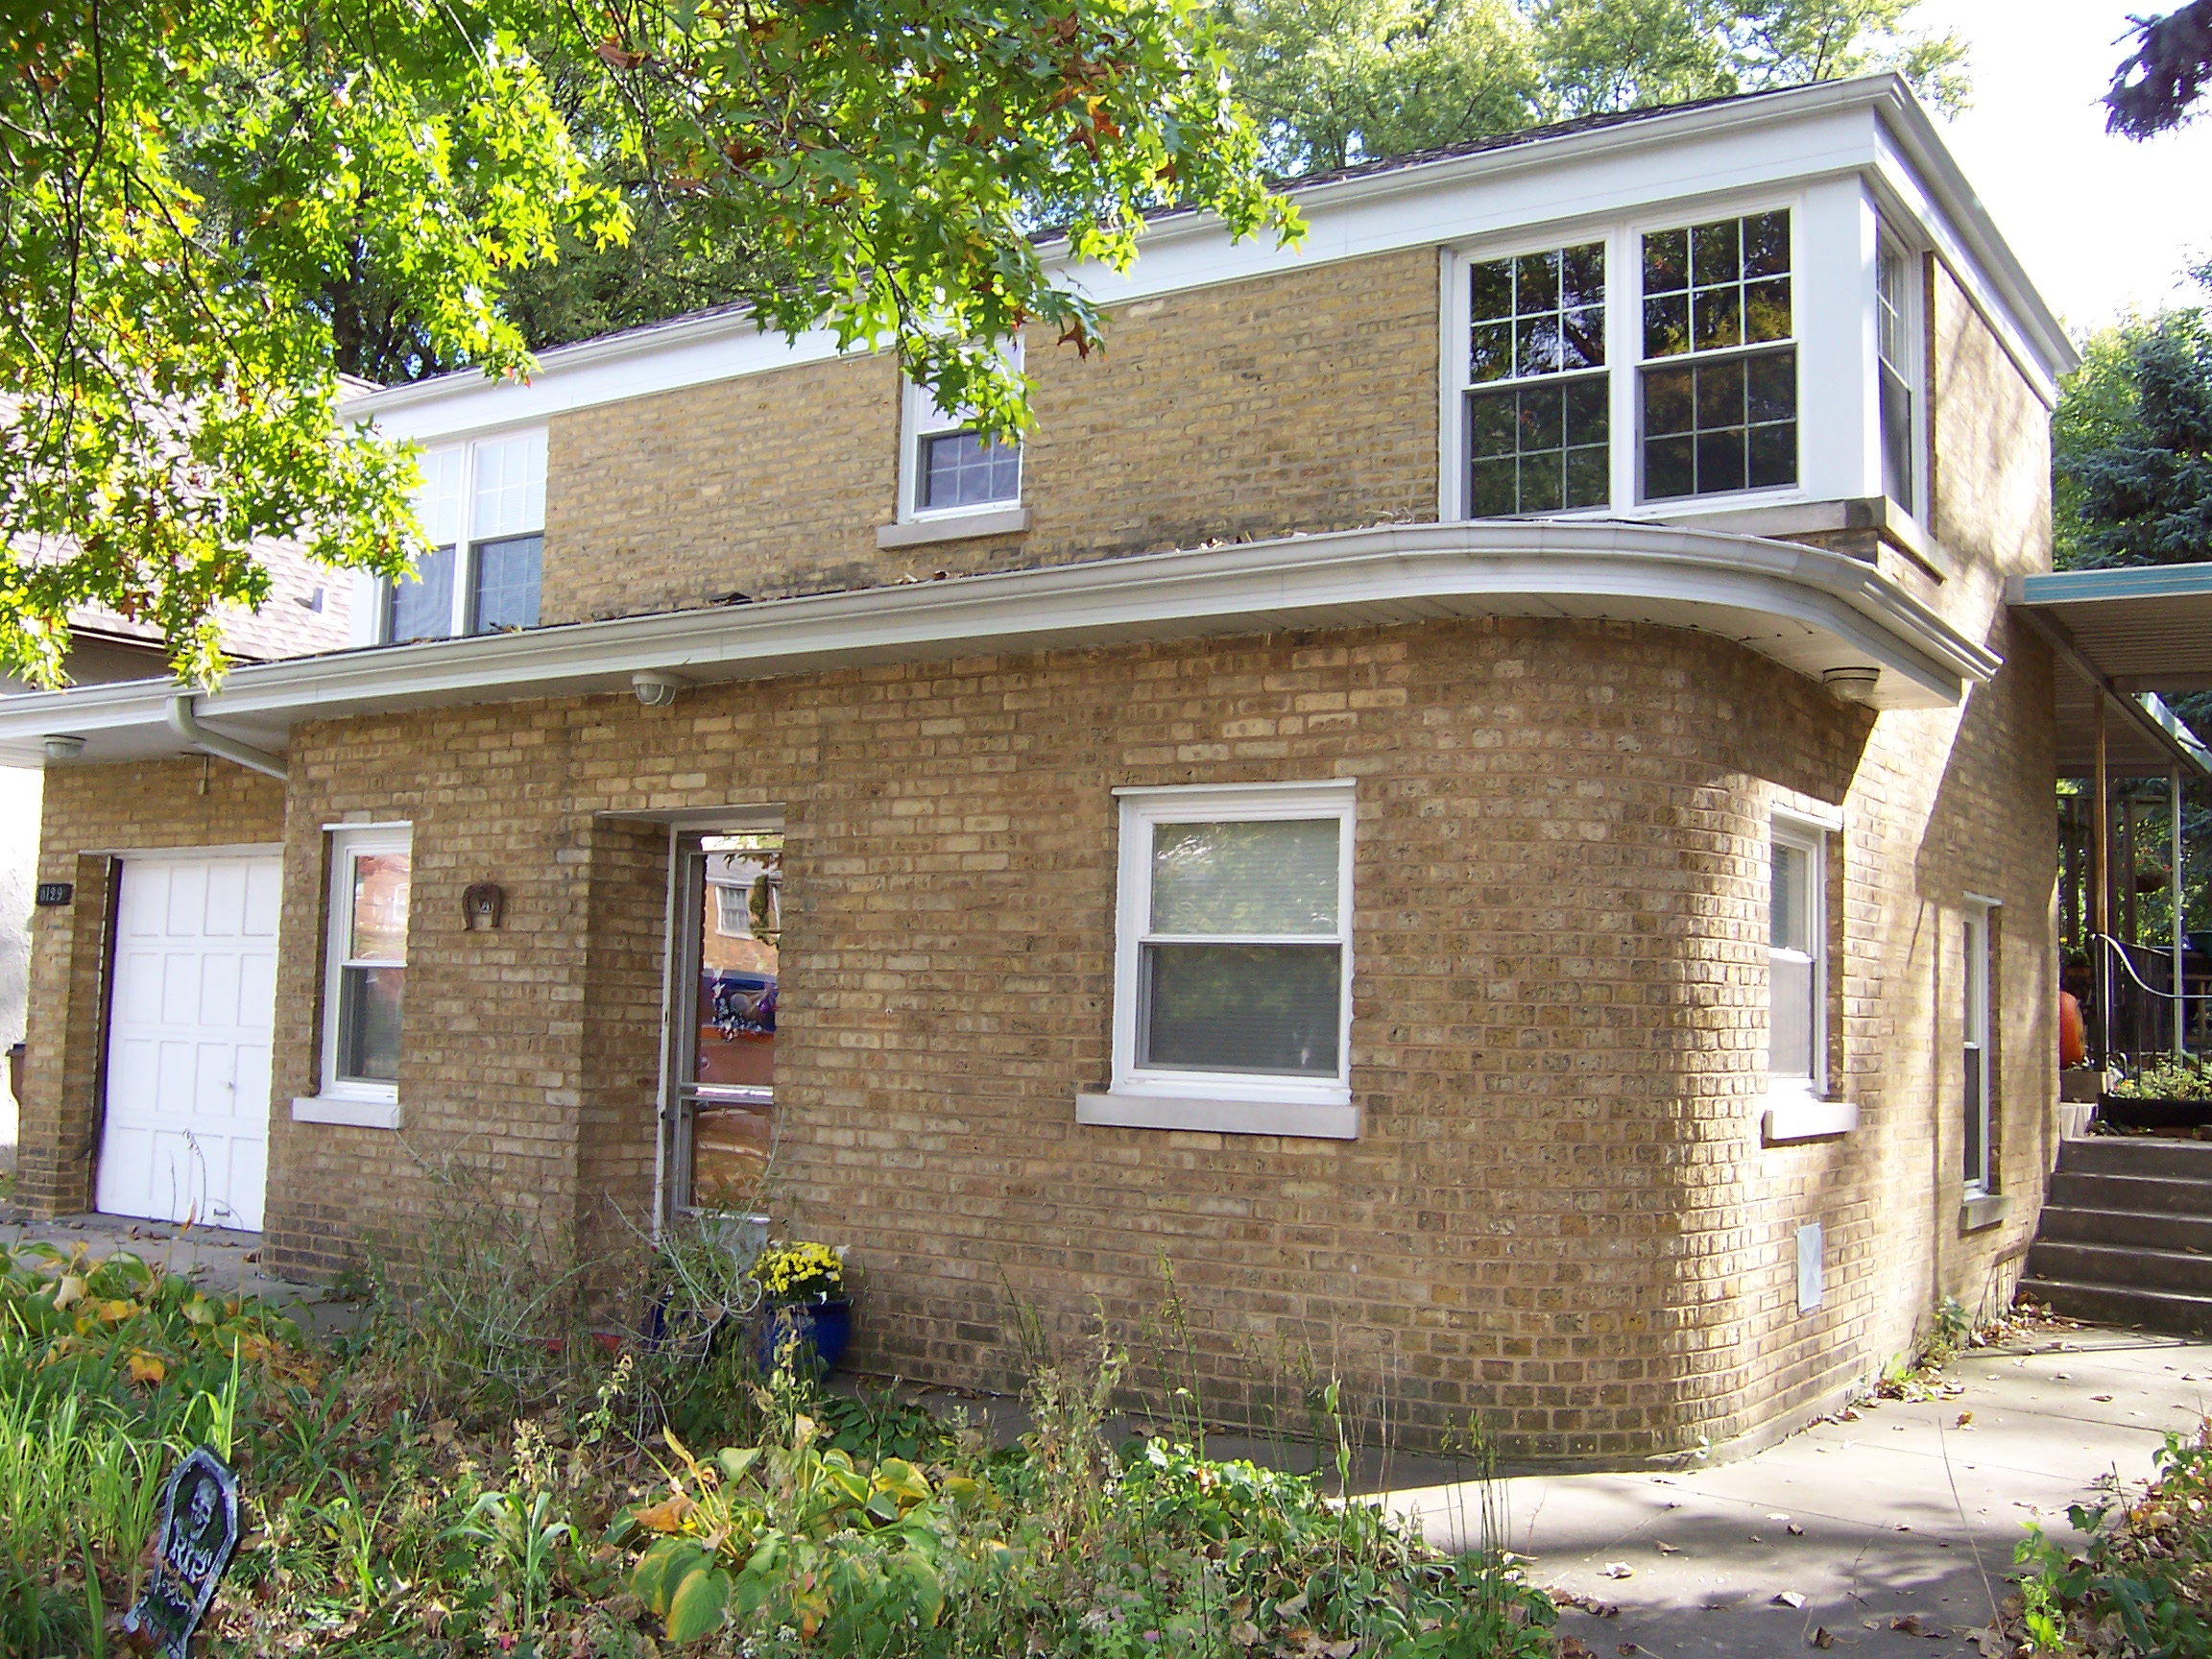 8129 W. 26th Street, North Riverside, Illinois 60546